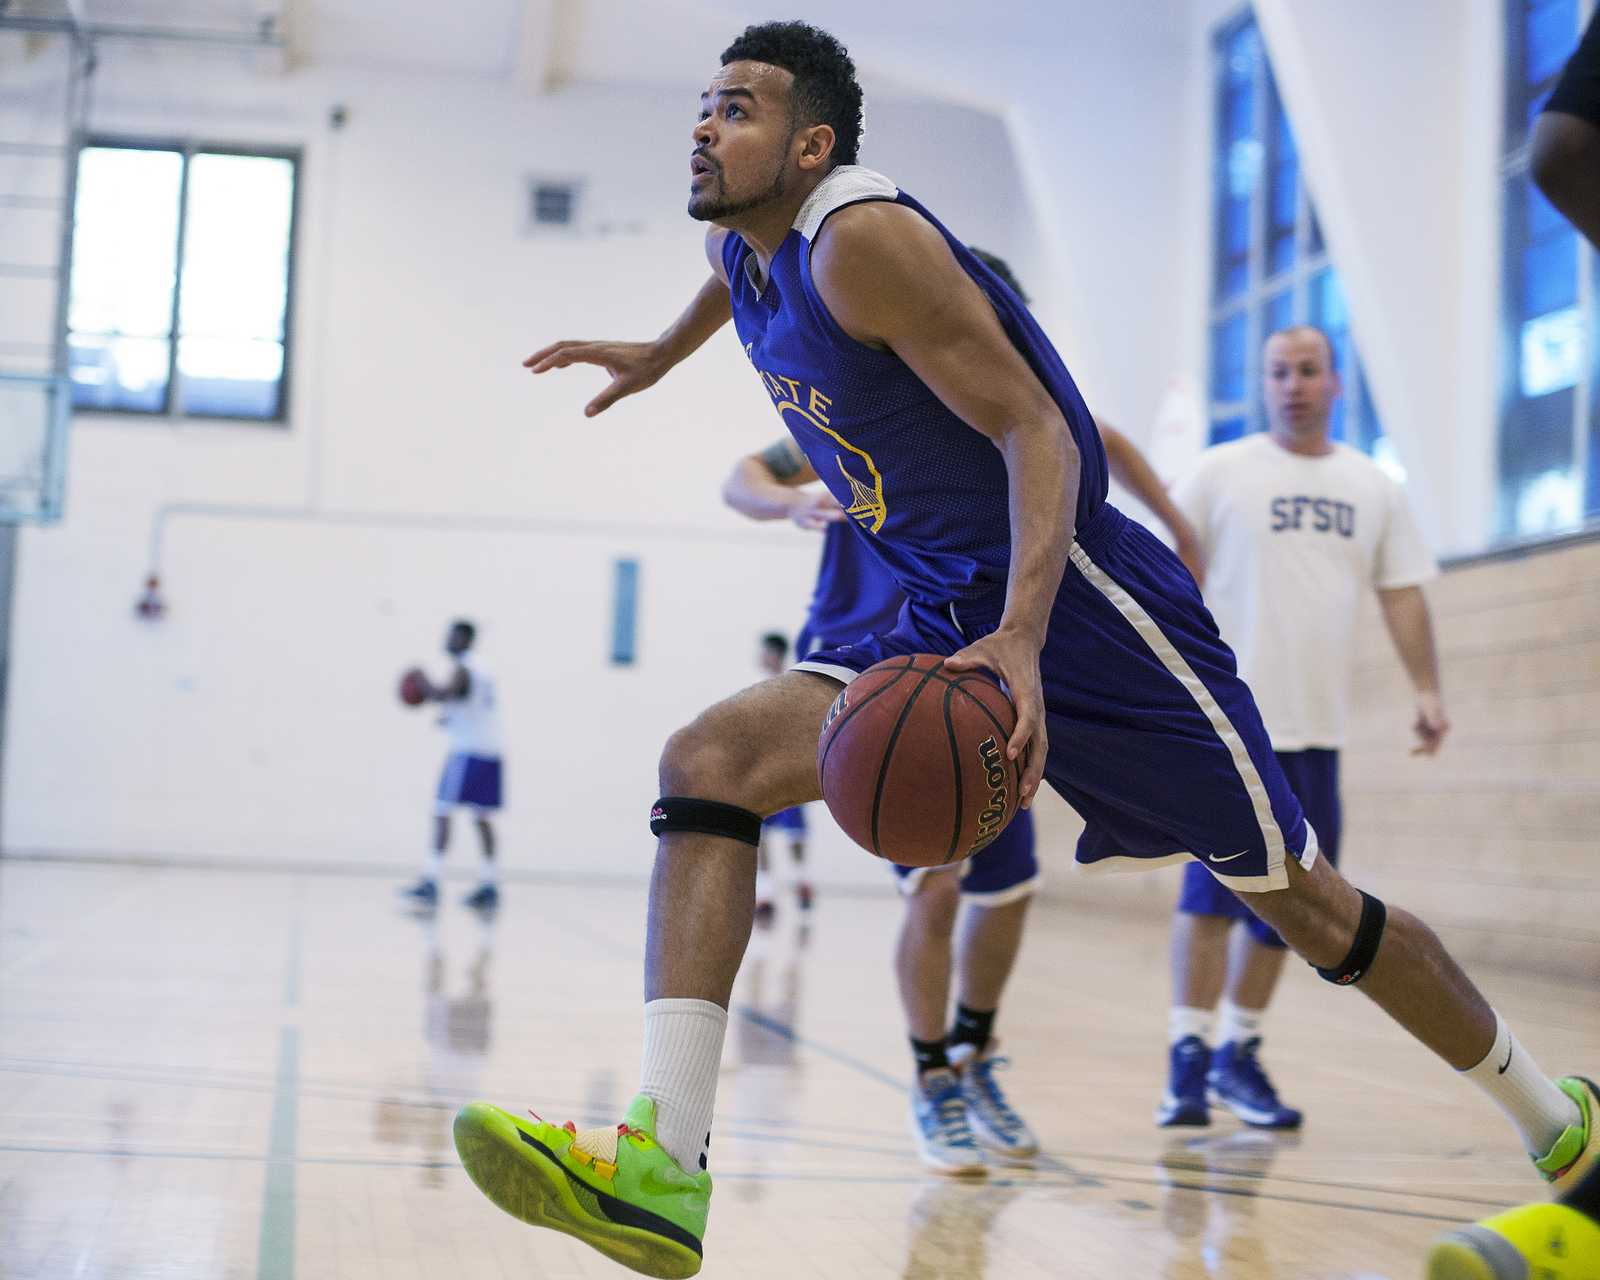 William Overton Jr. runs a drill at practice on Tuesday, Oct. 15, 2013 at SF State. The Gators play their first game on Saturday, Nov. 2 against St. John's University in Queens, NY. Photo by Dariel Medina / Xpress